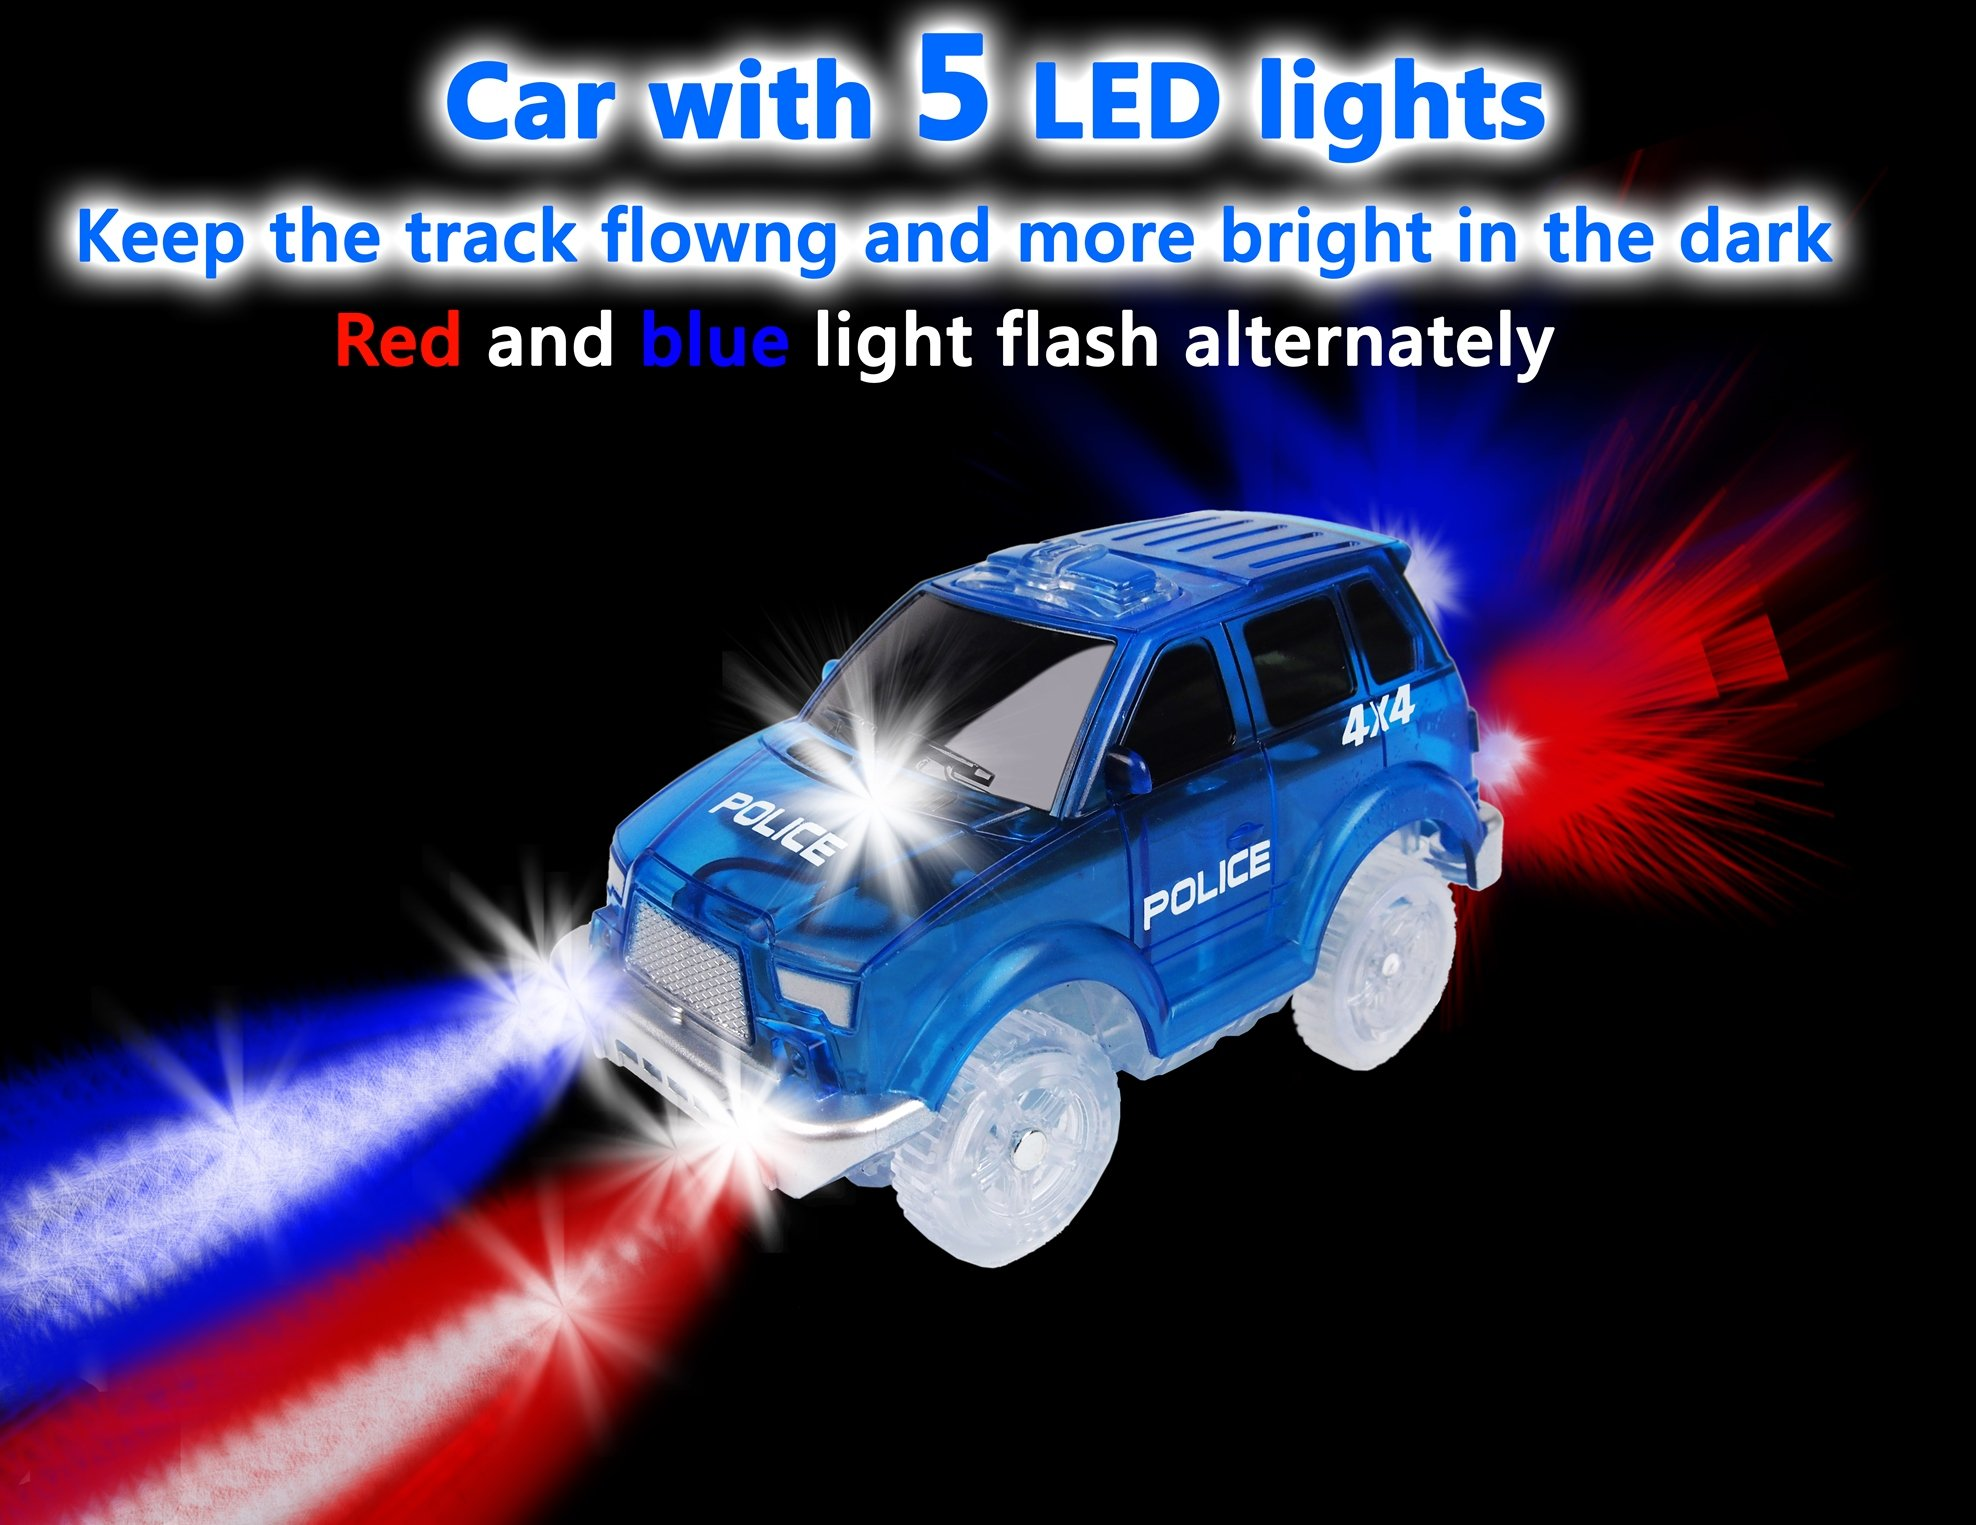 Track Car 3 Pack, Green Military Jeep, Blue Police and School Bus Car, with 5 LED Lights, Compatible with Most Tracks Including Magic Tracks, Neo Twister Tracks, Boys and Girls by HapiSimi (Image #5)